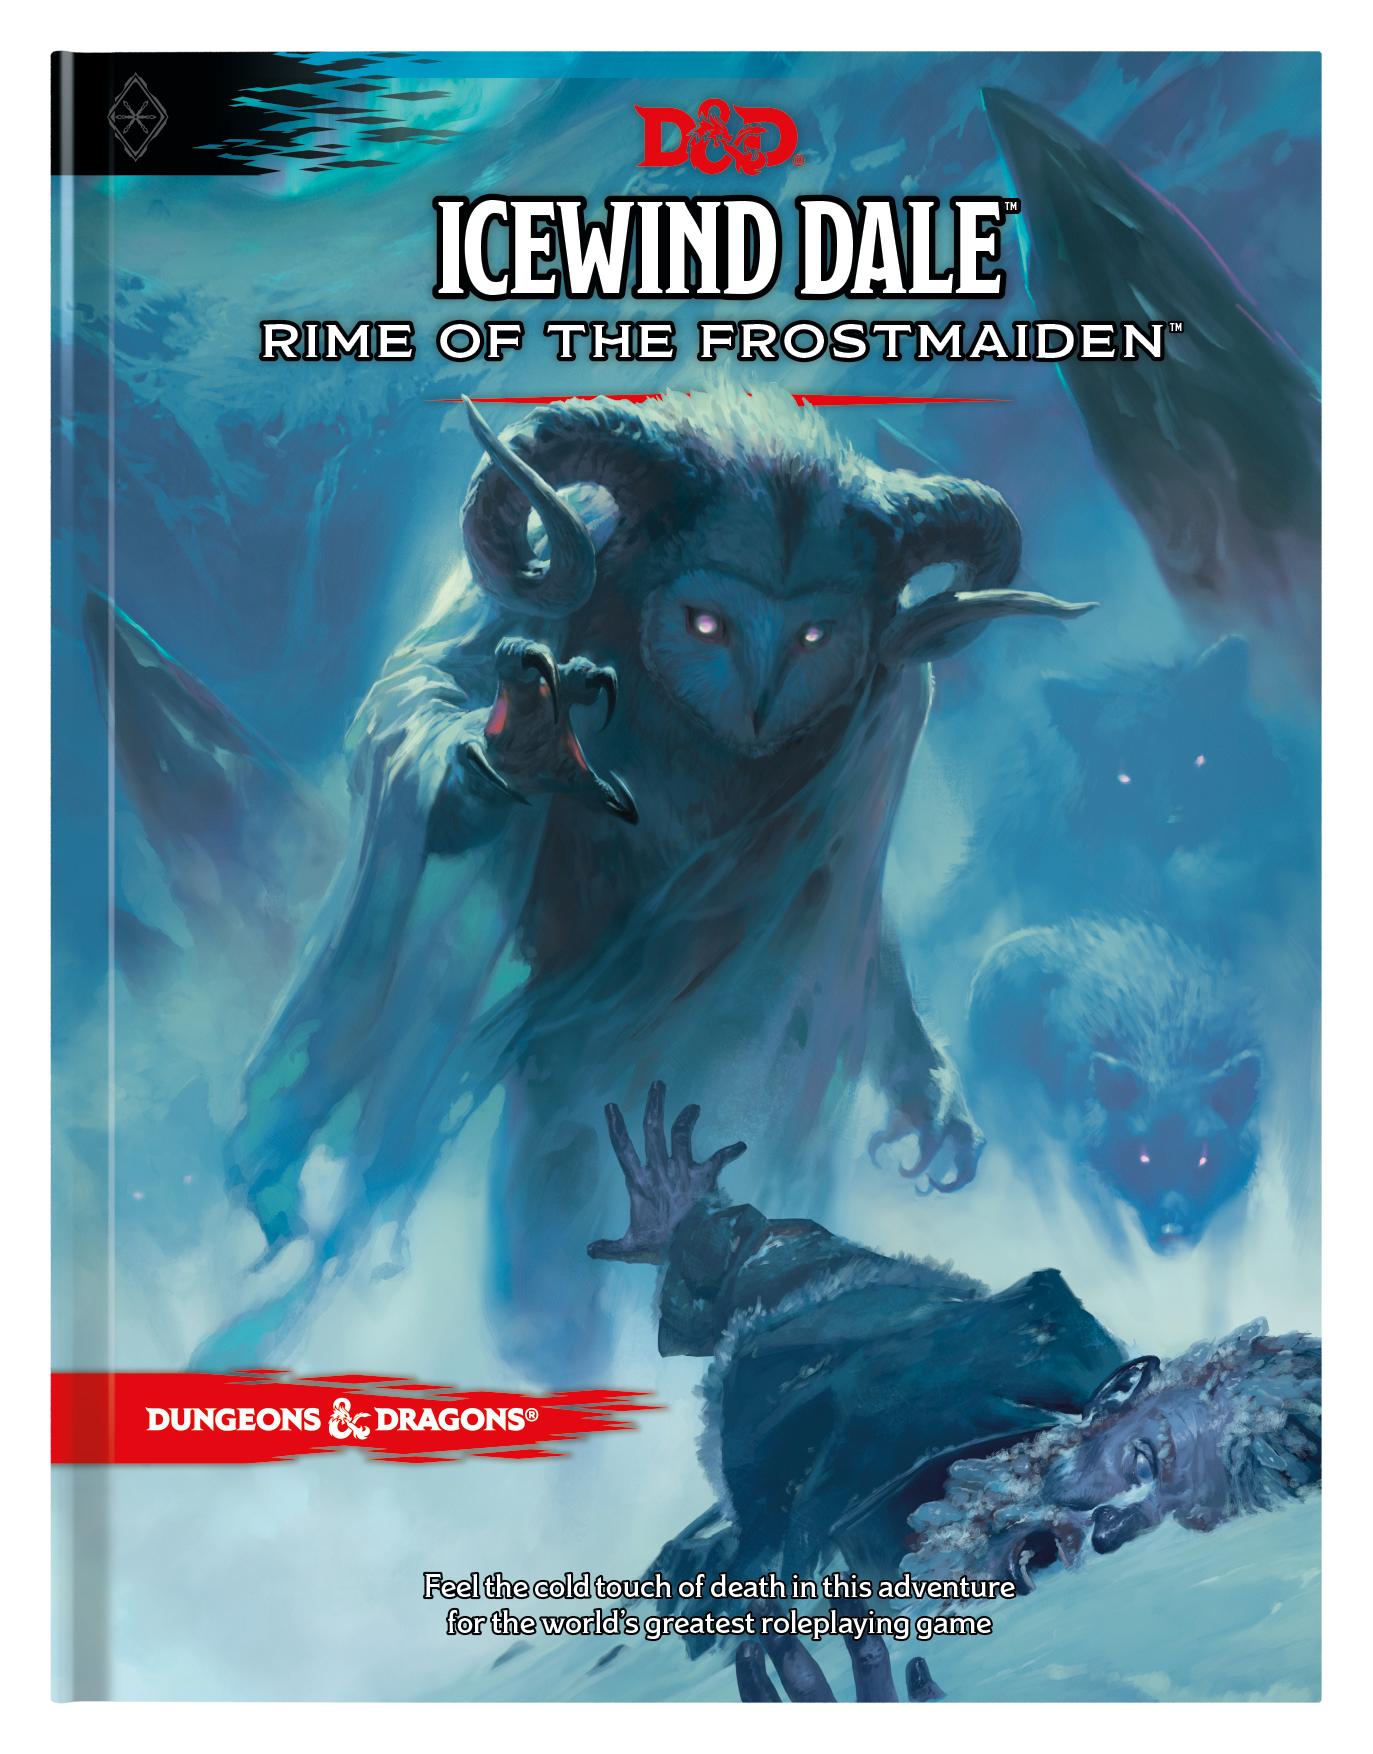 Cover art of Icewind Dale: Rime of the Frostmaiden